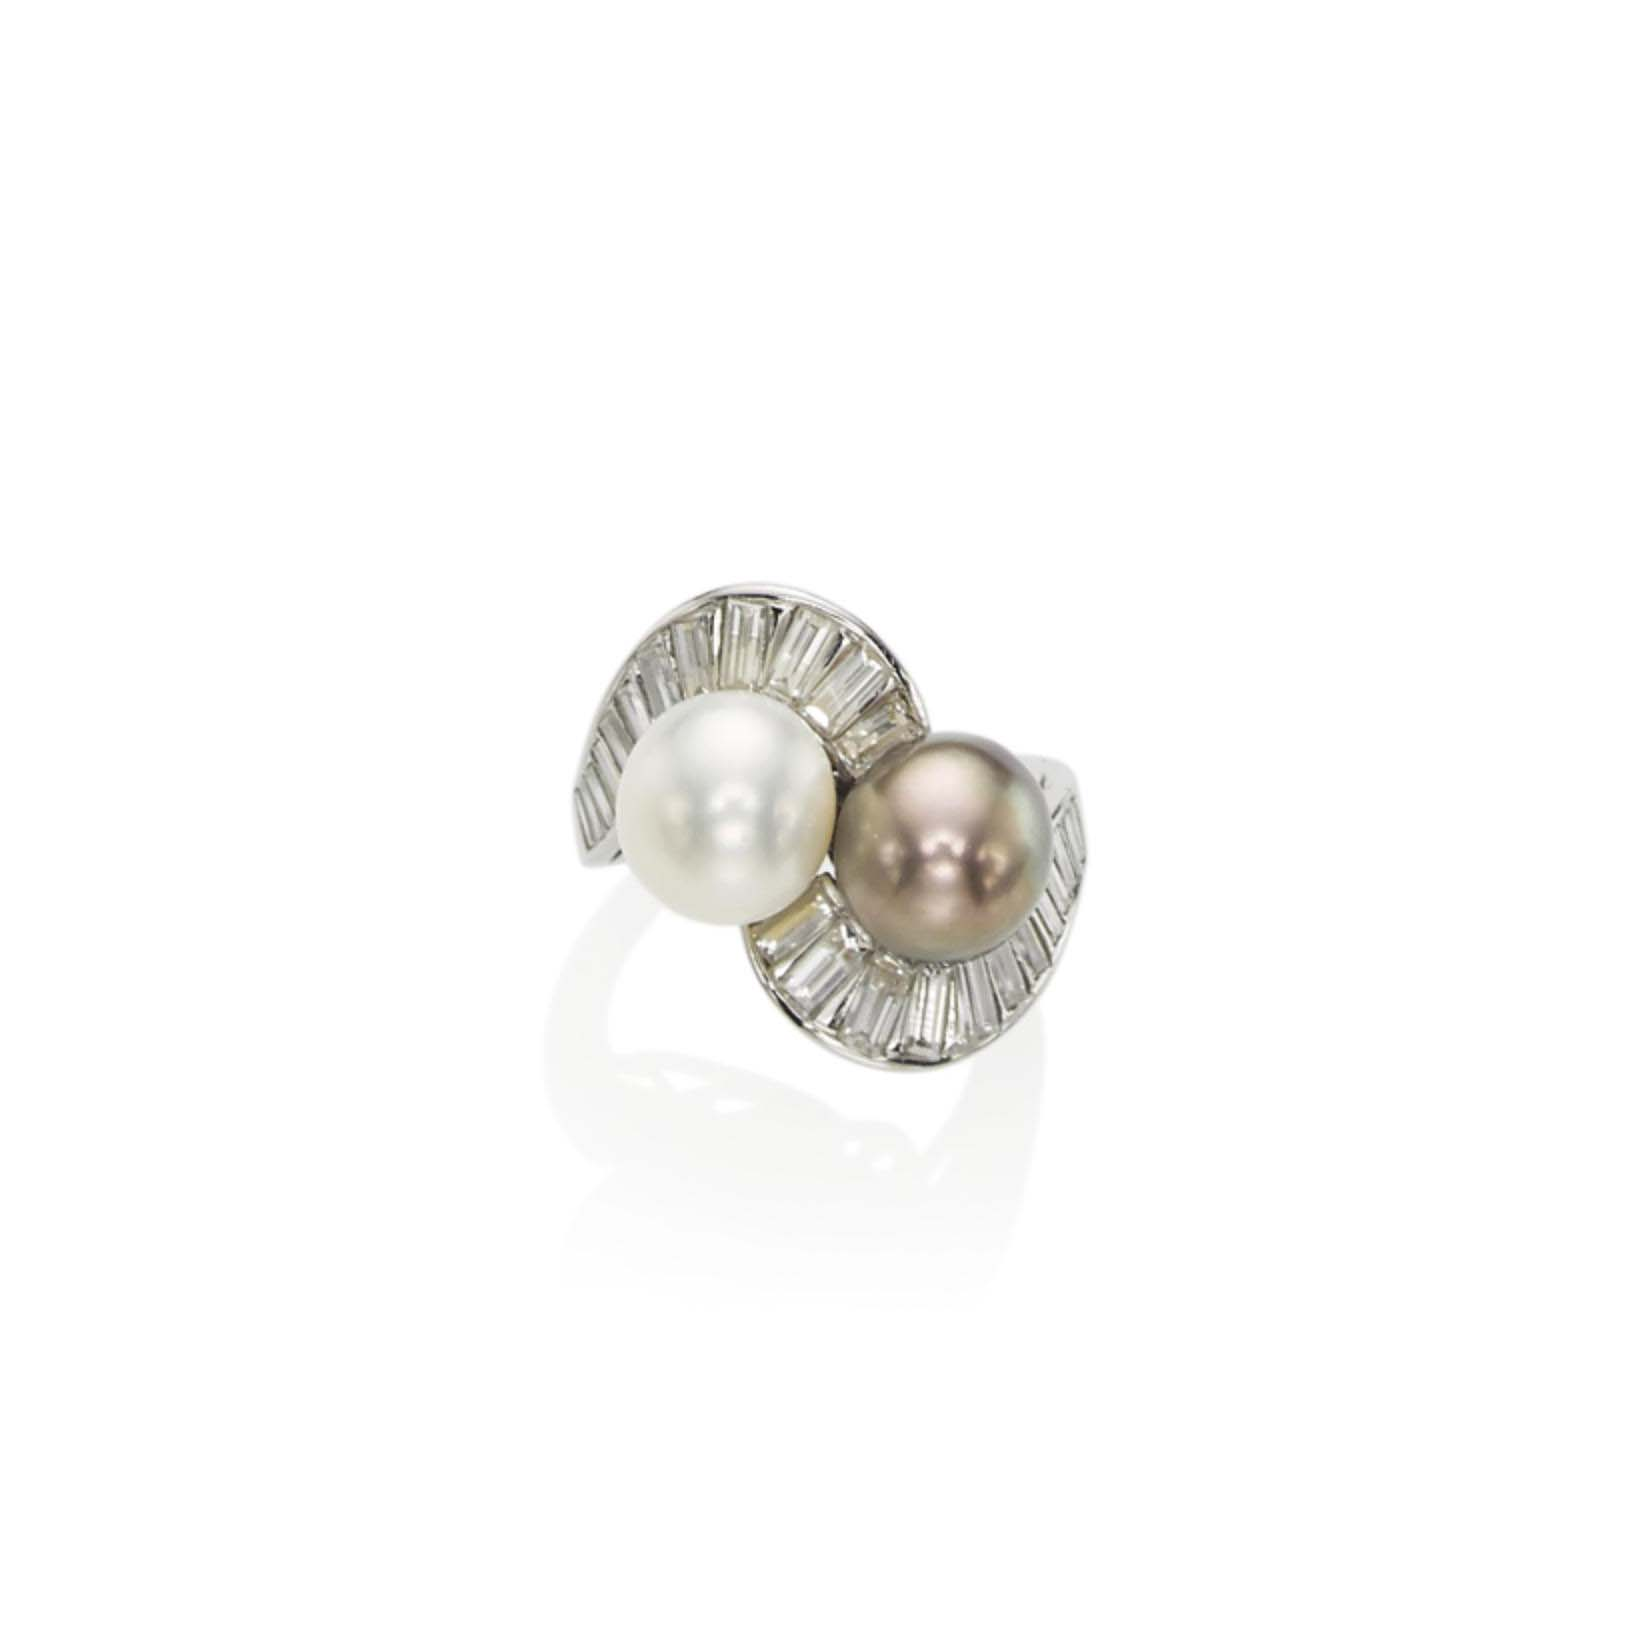 A NATURAL PEARL AND DIAMOND 'TOI ET MOI' RING, BY CUSI